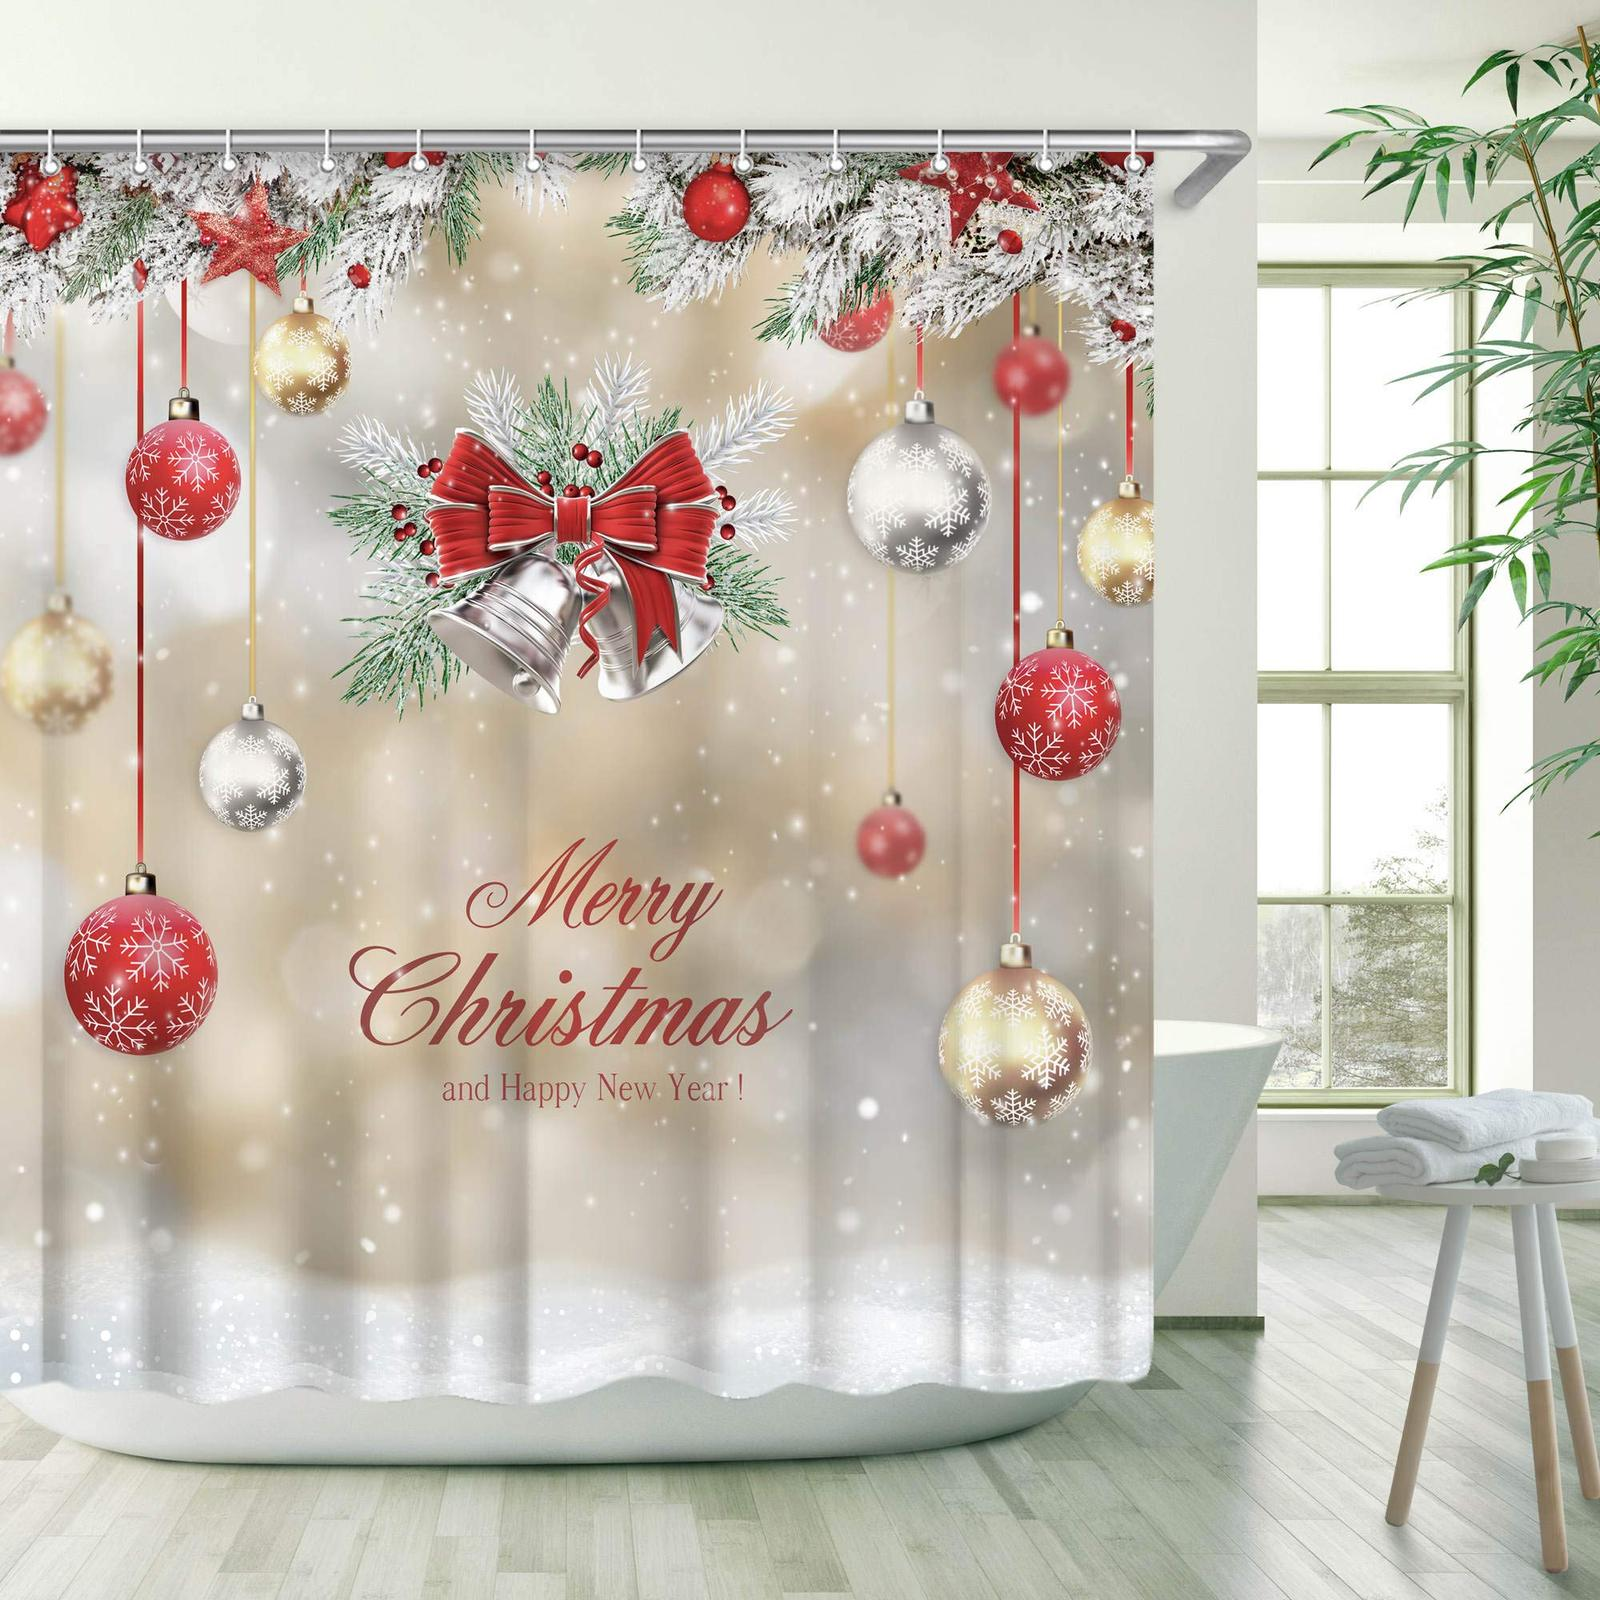 Primary image for Stacy Fay Xmas Shower Curtain, Merry Christmas Shower Curtains Set with 12 Hooks